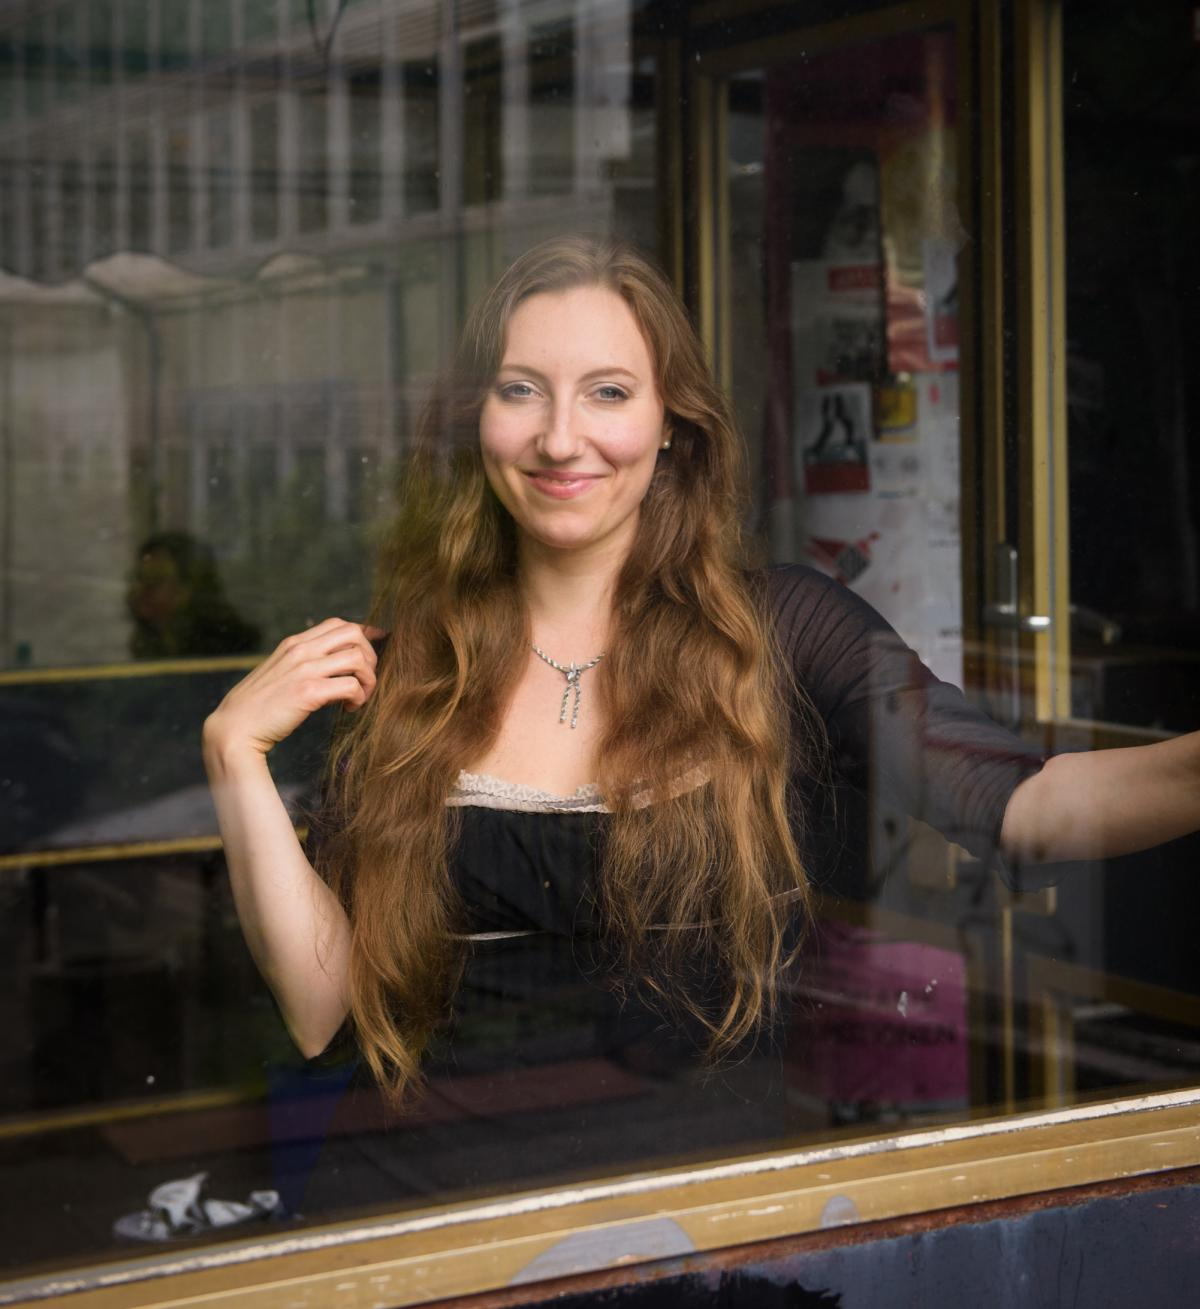 Sophia Lierenfeld, 28, leads an improvisational theater class for Germans and refugees. Abulhusn has been attending her weekly Improv Without Borders class and signed up for coaching in flirtation.